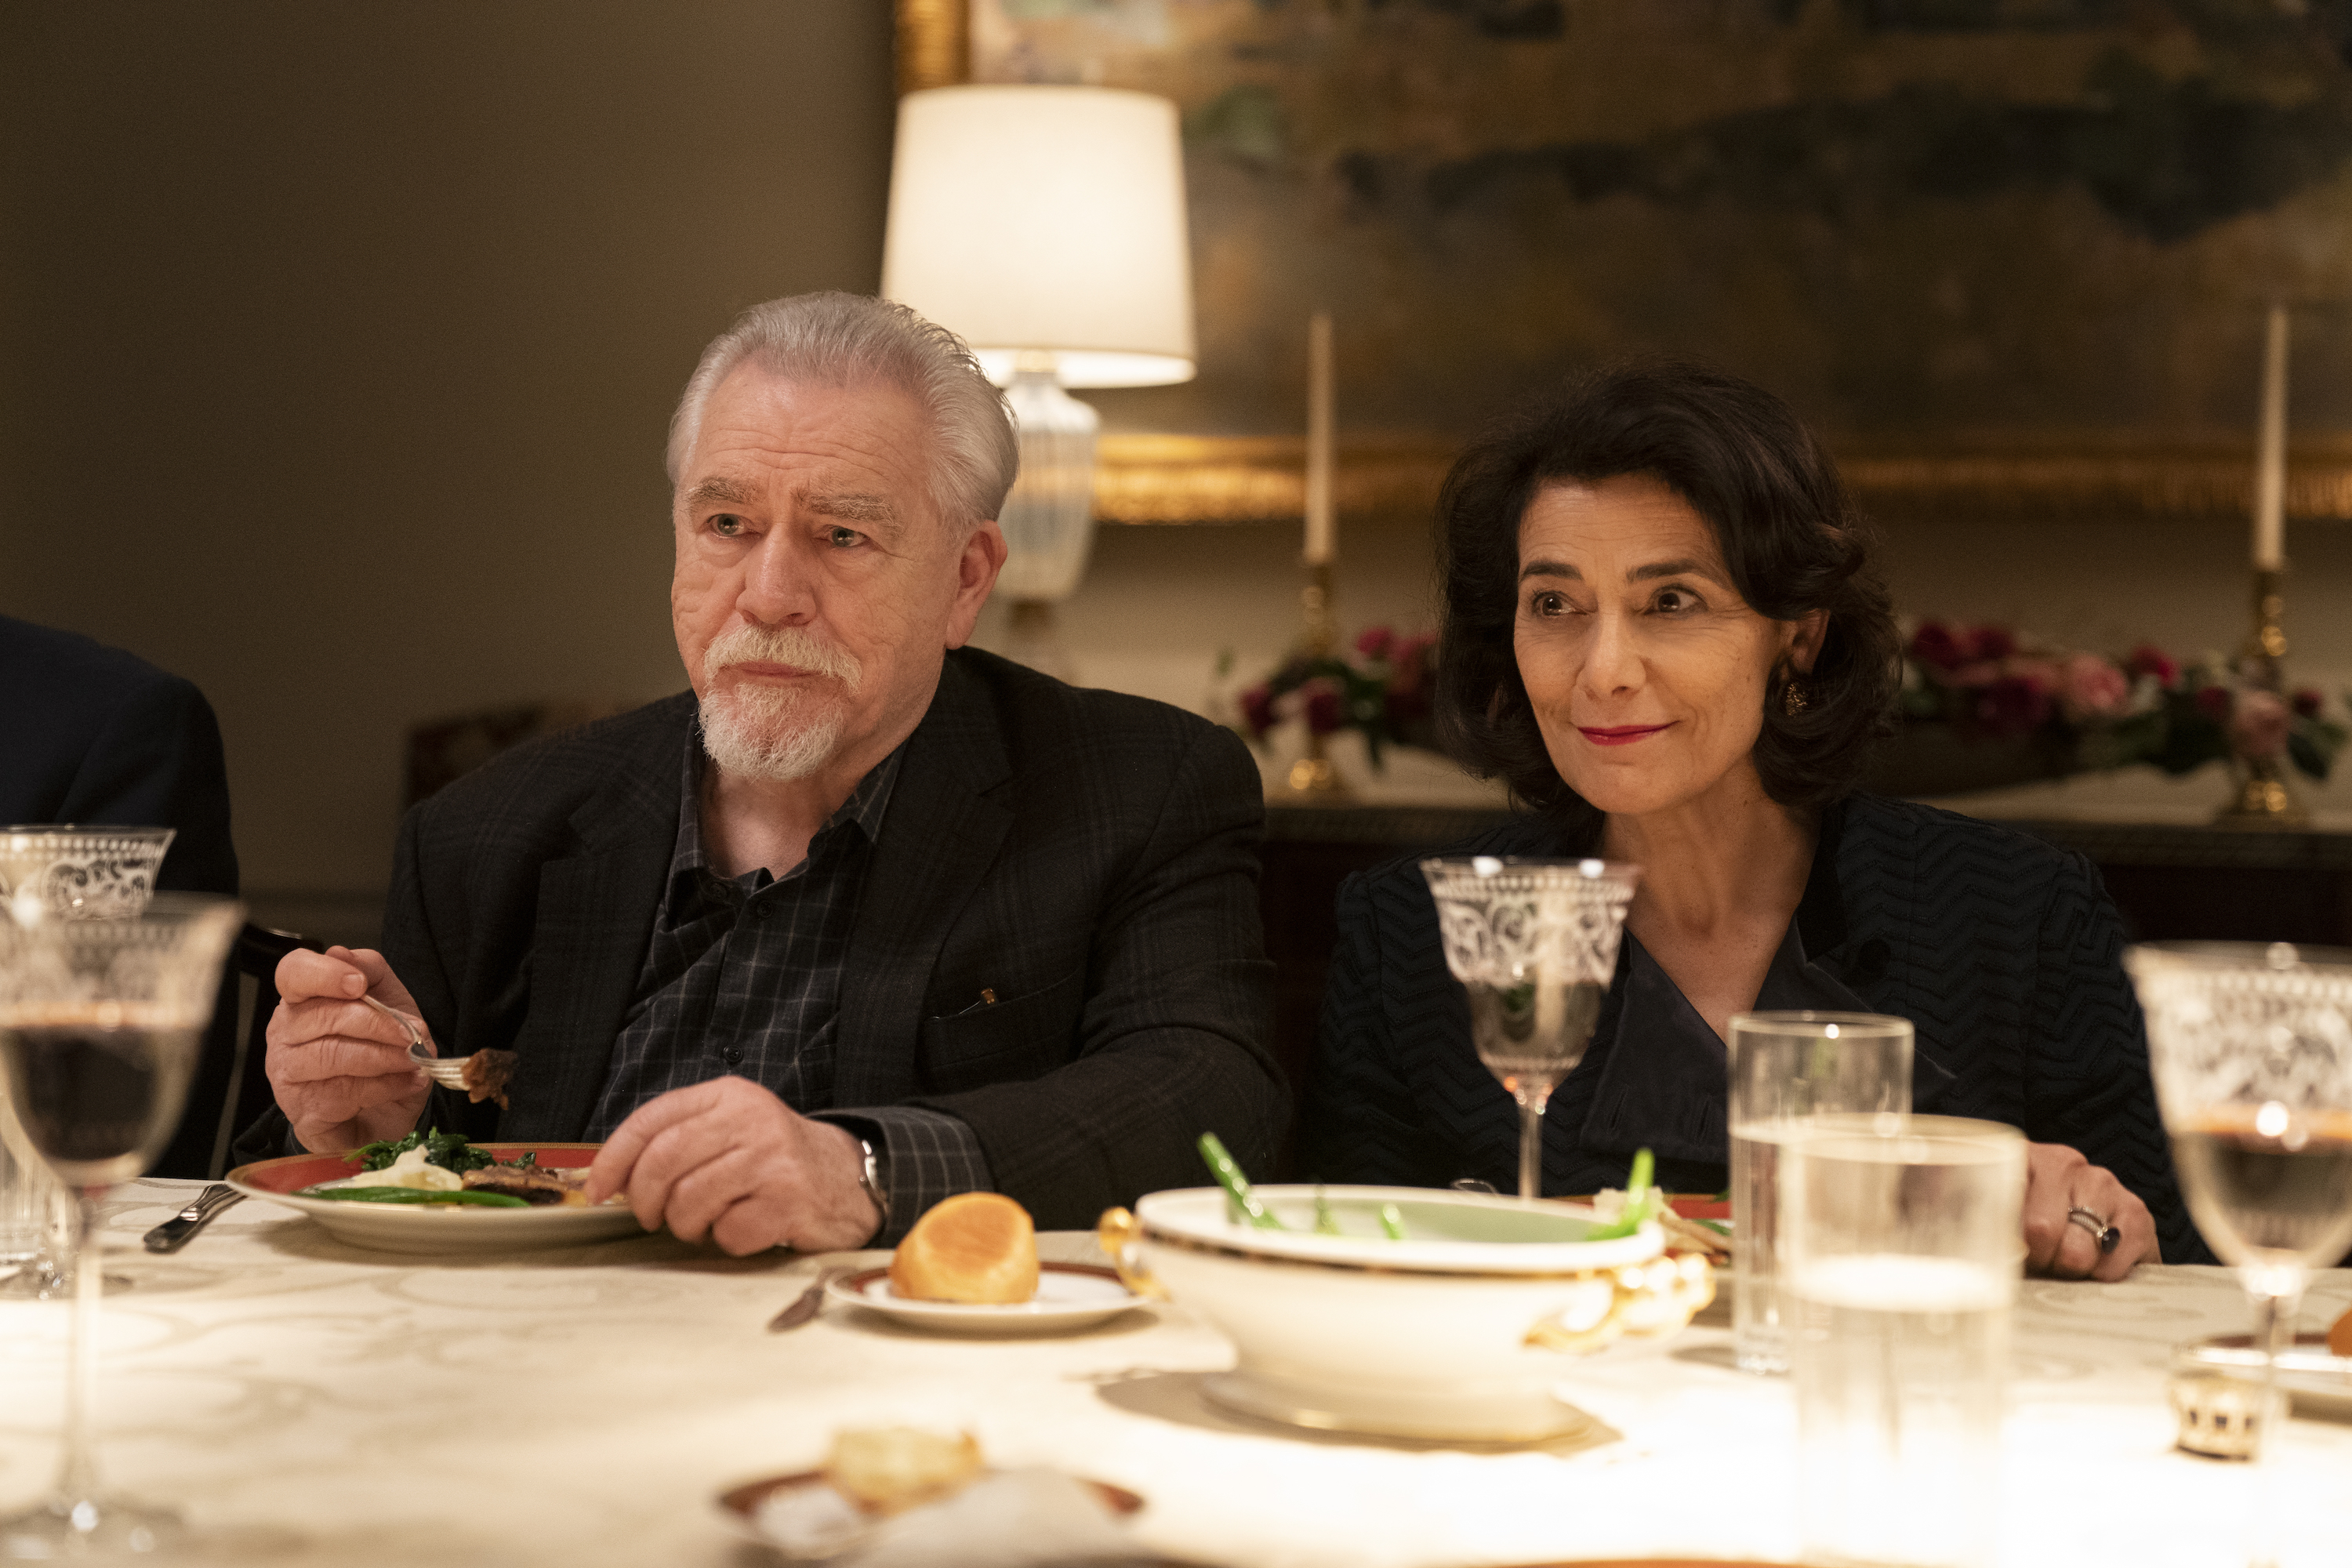 Logan (Cox) and Marcia (Abbass) sit at a dining table.